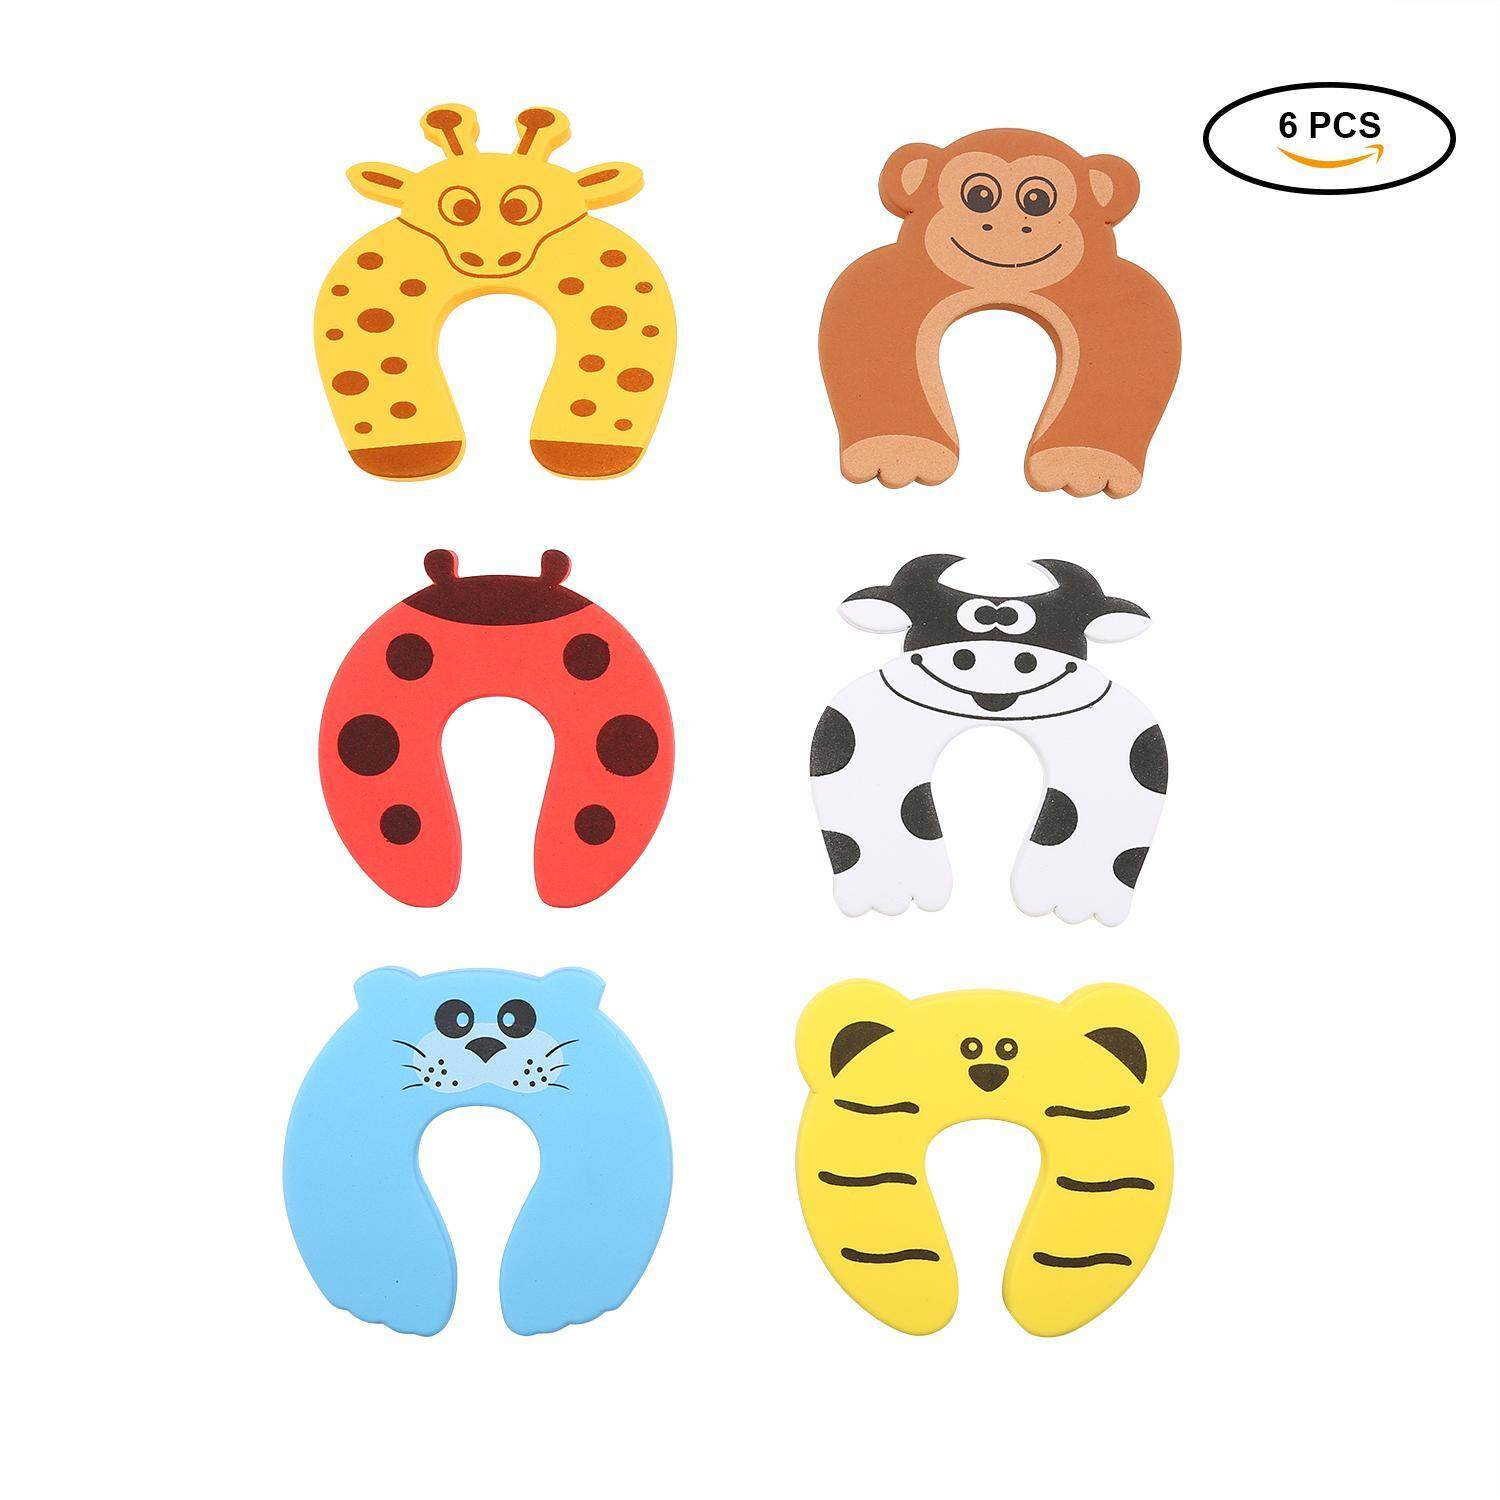 yydsop 6 Pcs Safety Shock Absorber Door Stoppers Anti-pinch Protect Fingers In Animal Cartoon Shapes For Child And Baby - intl